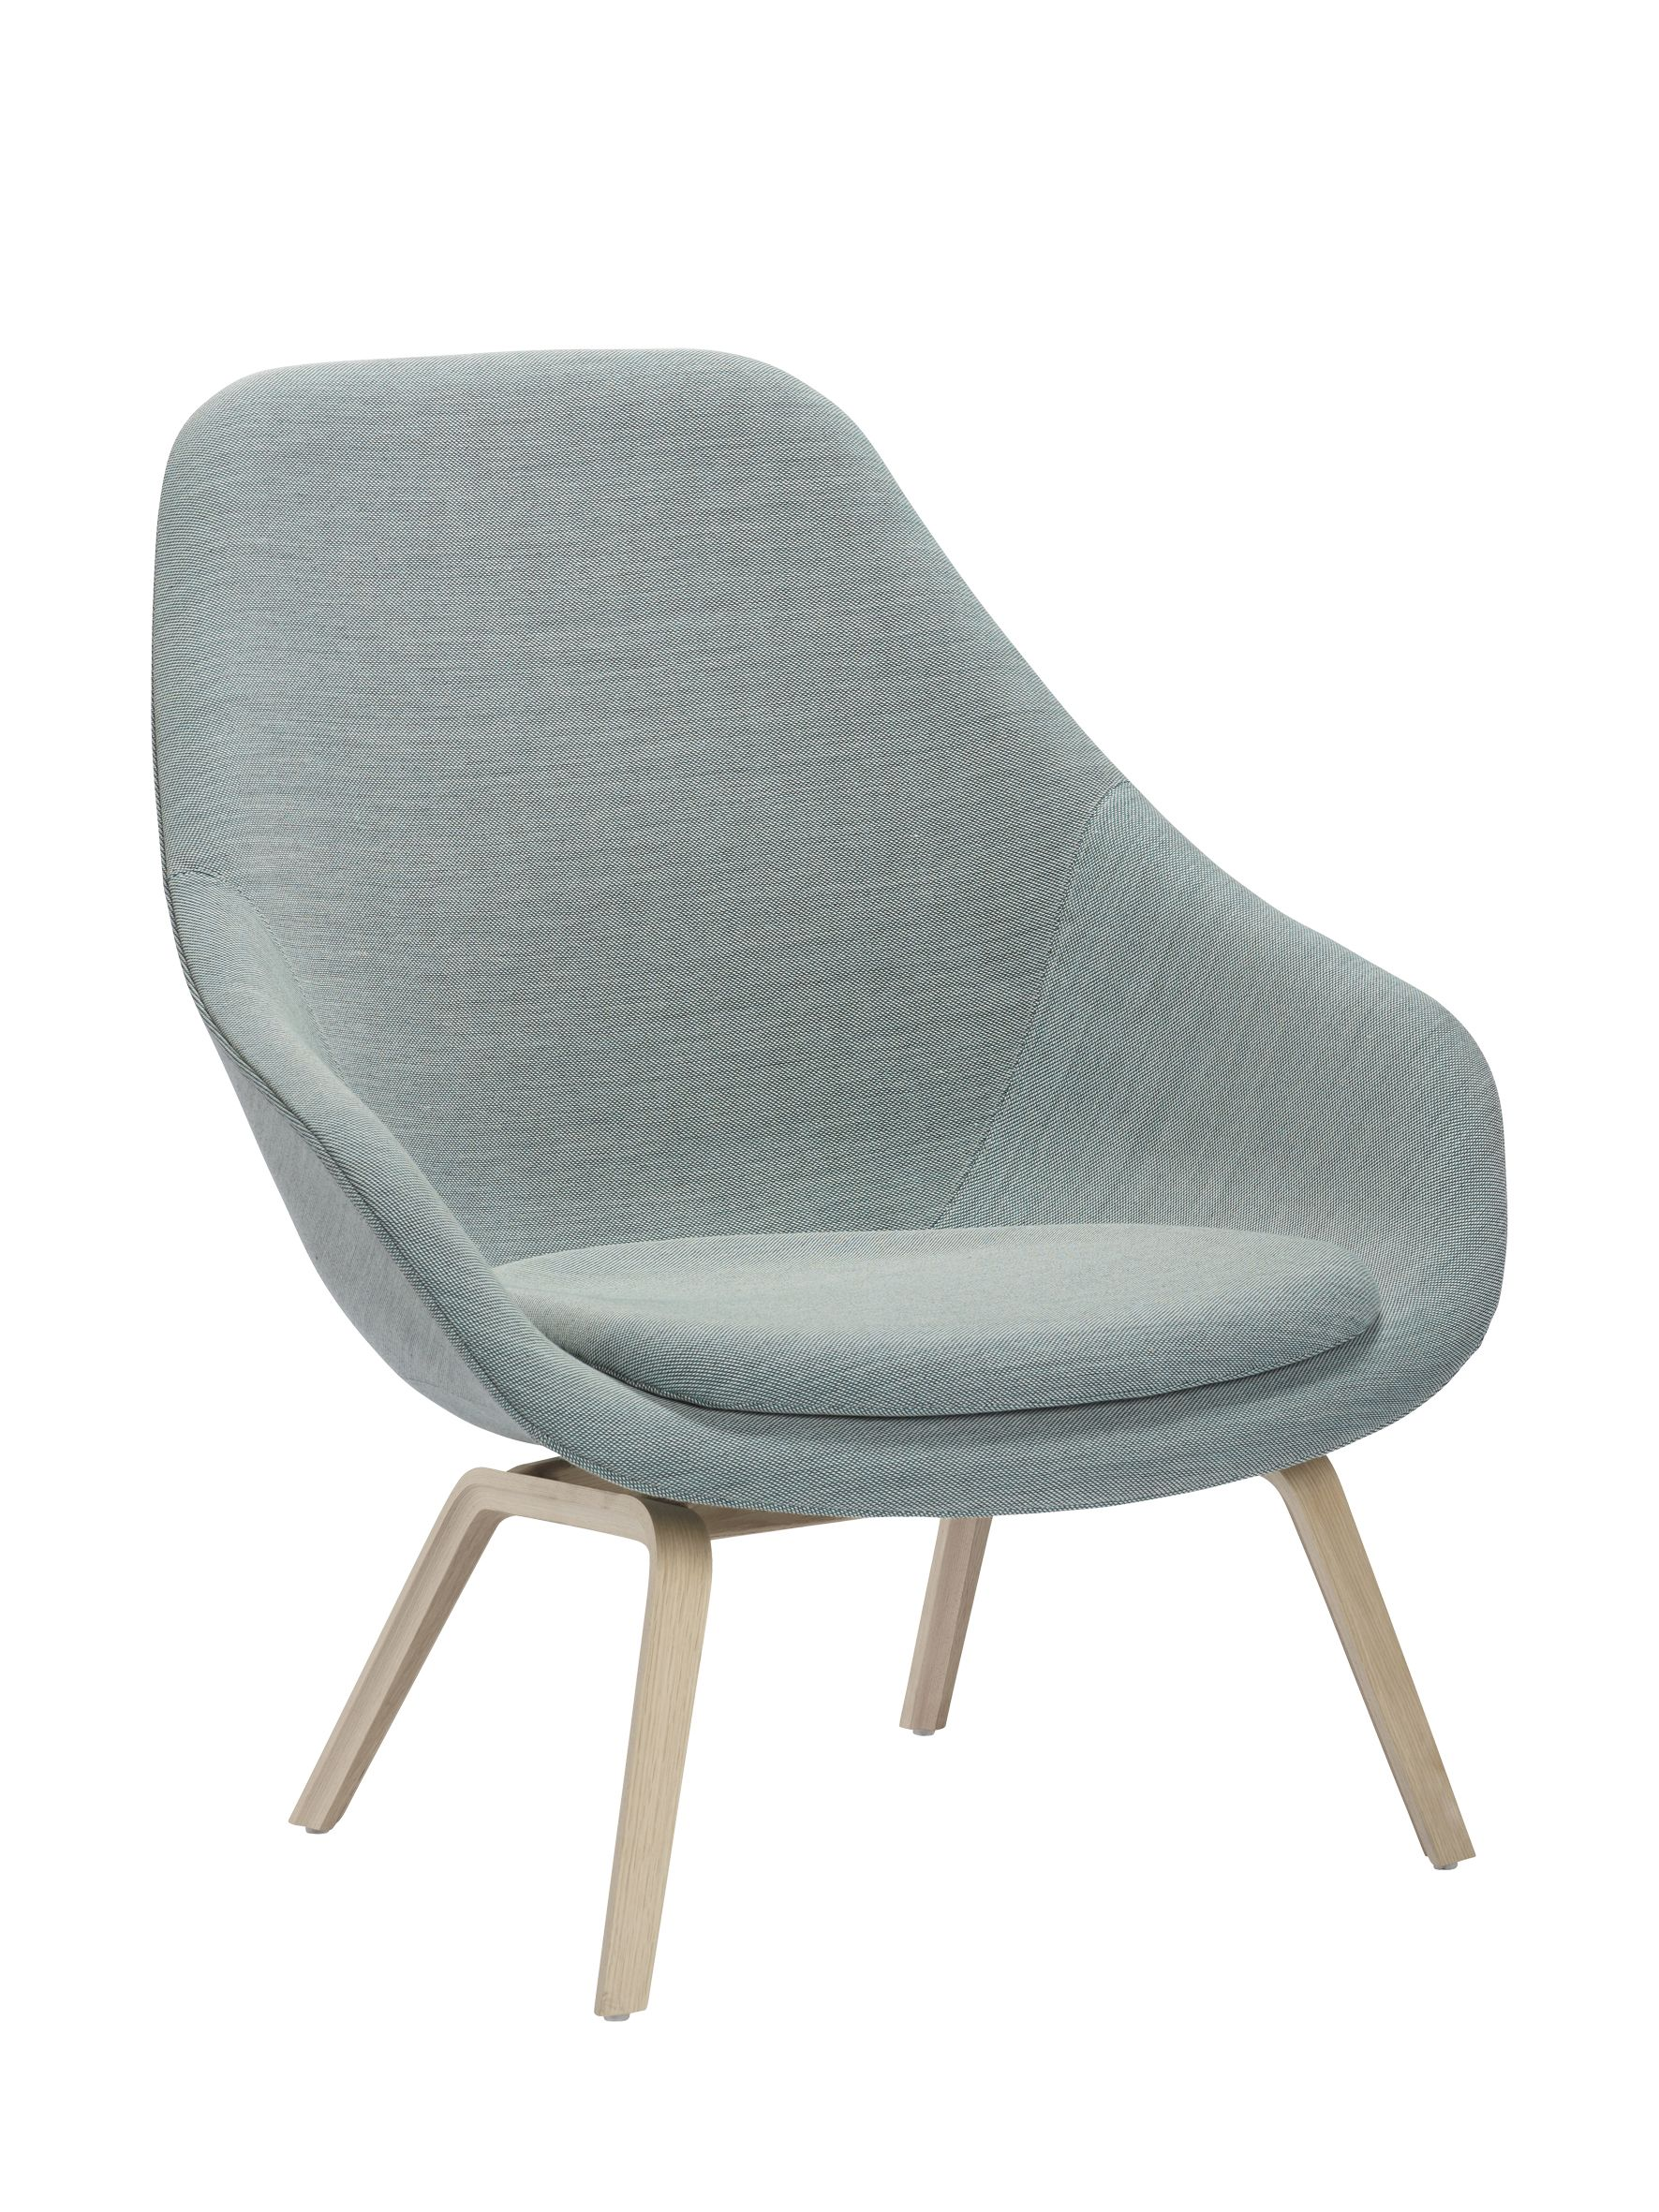 Hay About A Lounge Hay Lounge Chair Hays Furniture Lounge Chair